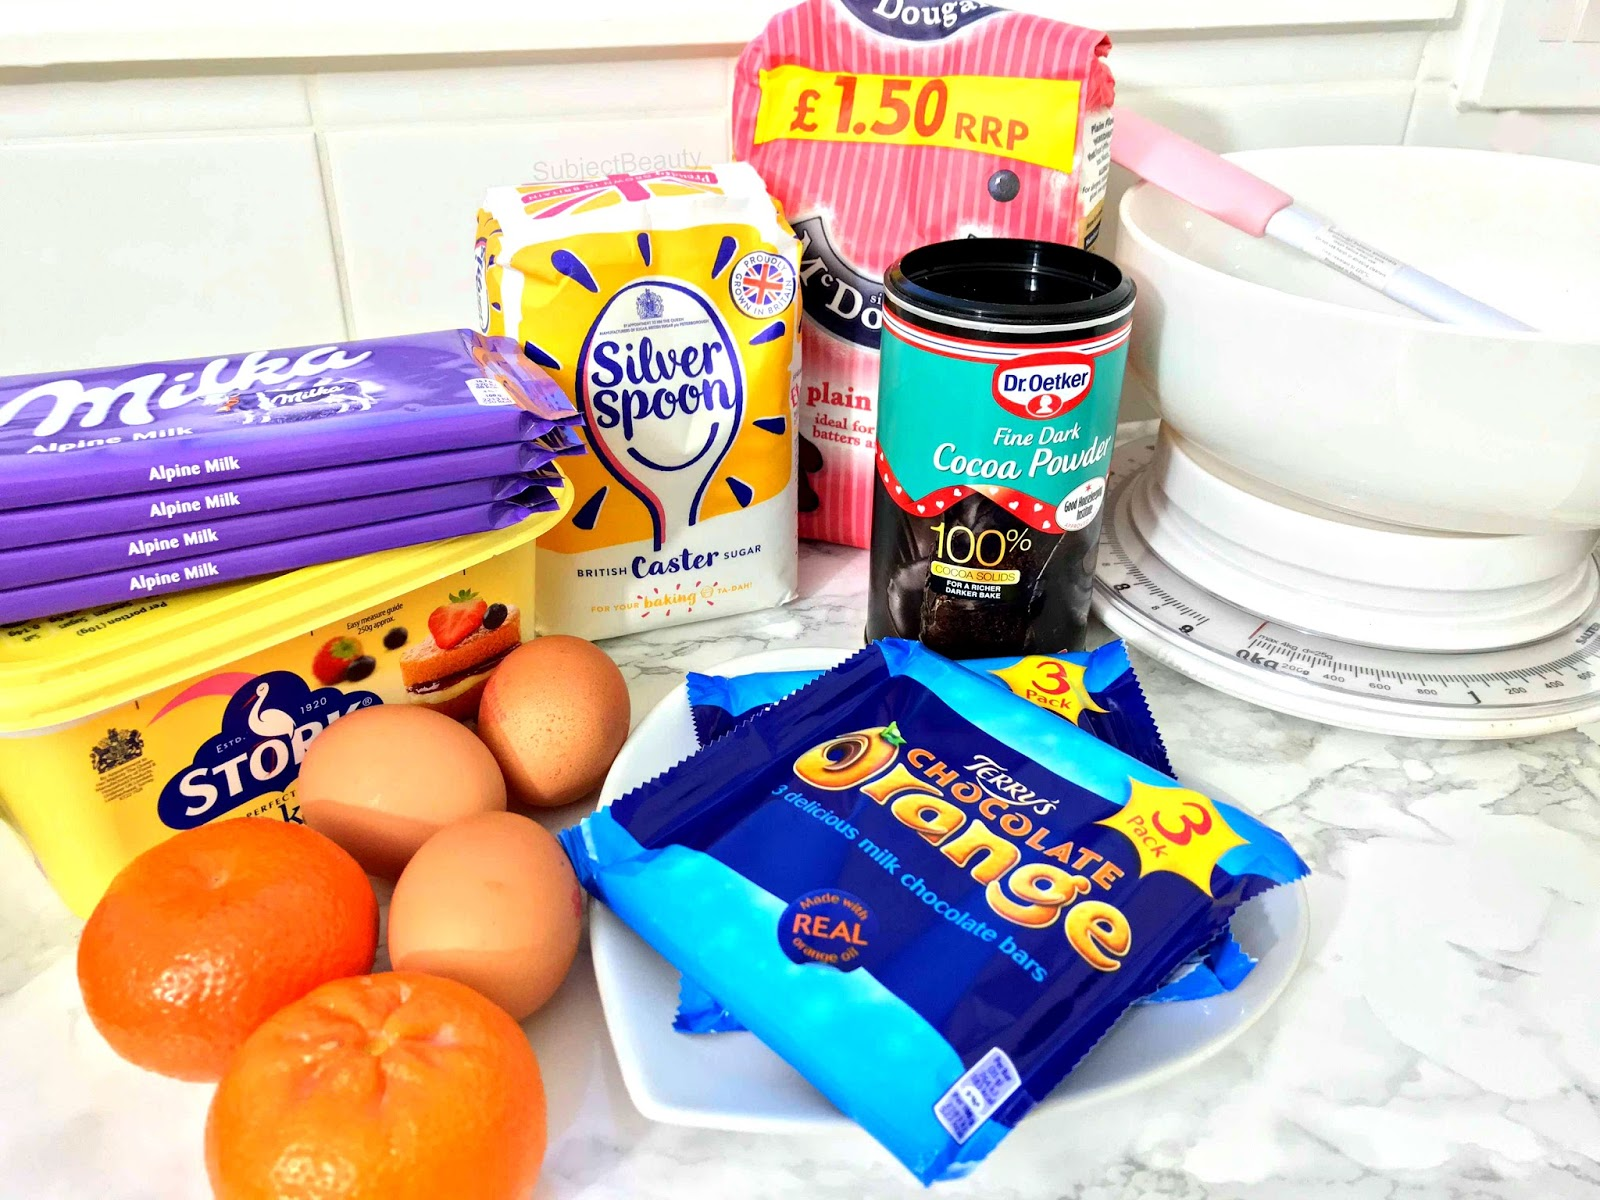 Terry's Chocolate Orange Brownies